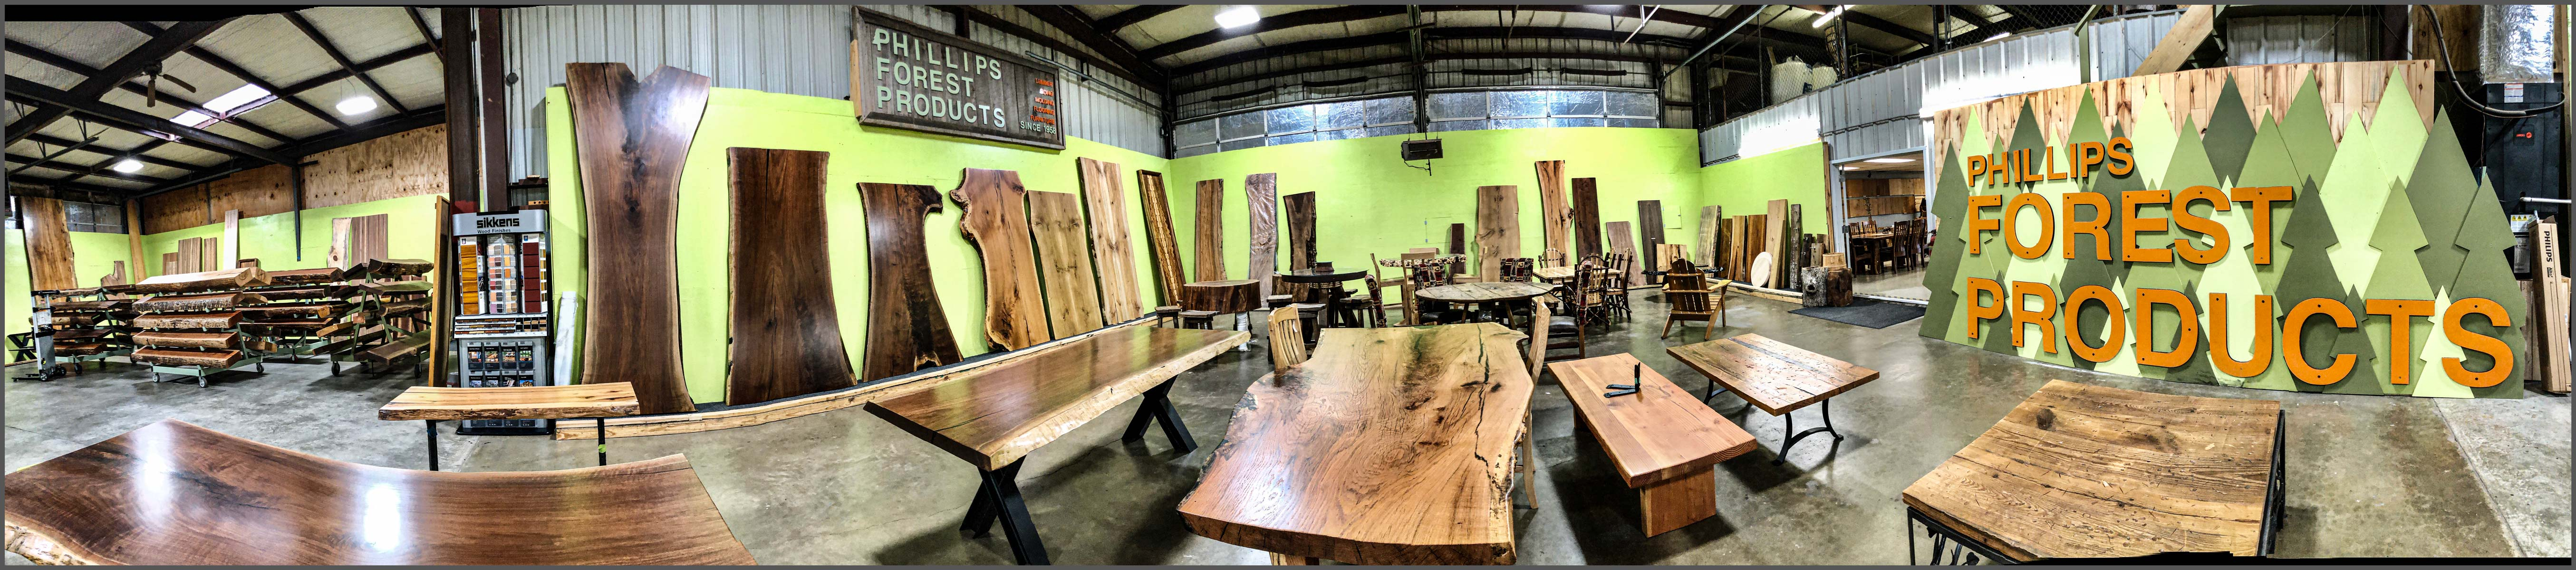 Live edge slabs, mantels, and rustic furniture available in our store in Hooks, Tx.